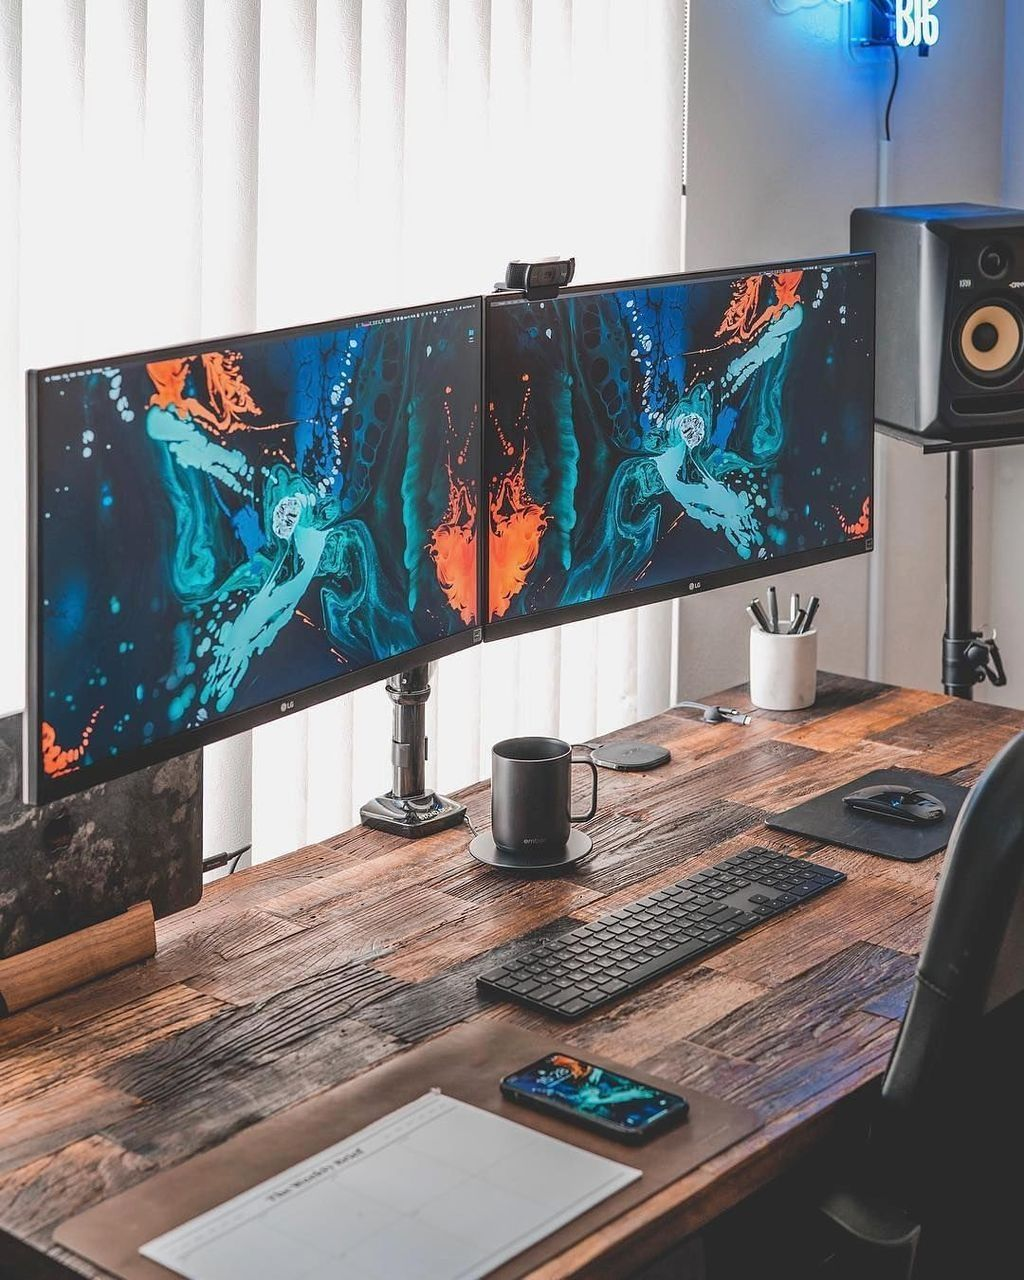 Ways To Decorate A Gaming Desk Lazada Only In Homesable Design Gaming Desk Cheap Gaming Setup Gaming Desk Diy